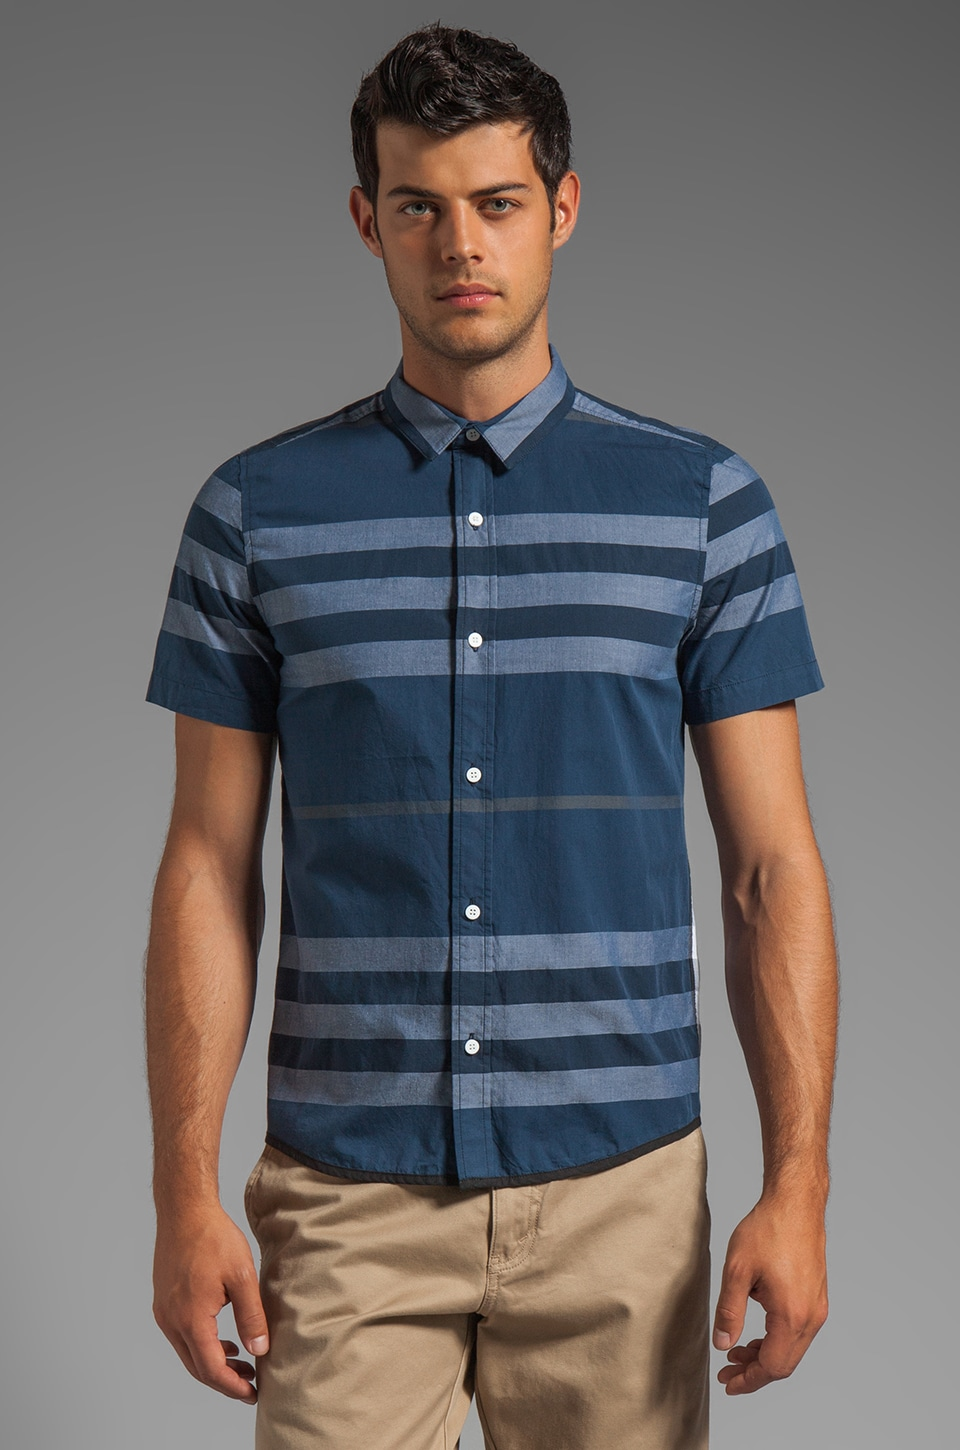 Z.A.K. Short Sleeve Plaid Shirt in Navy